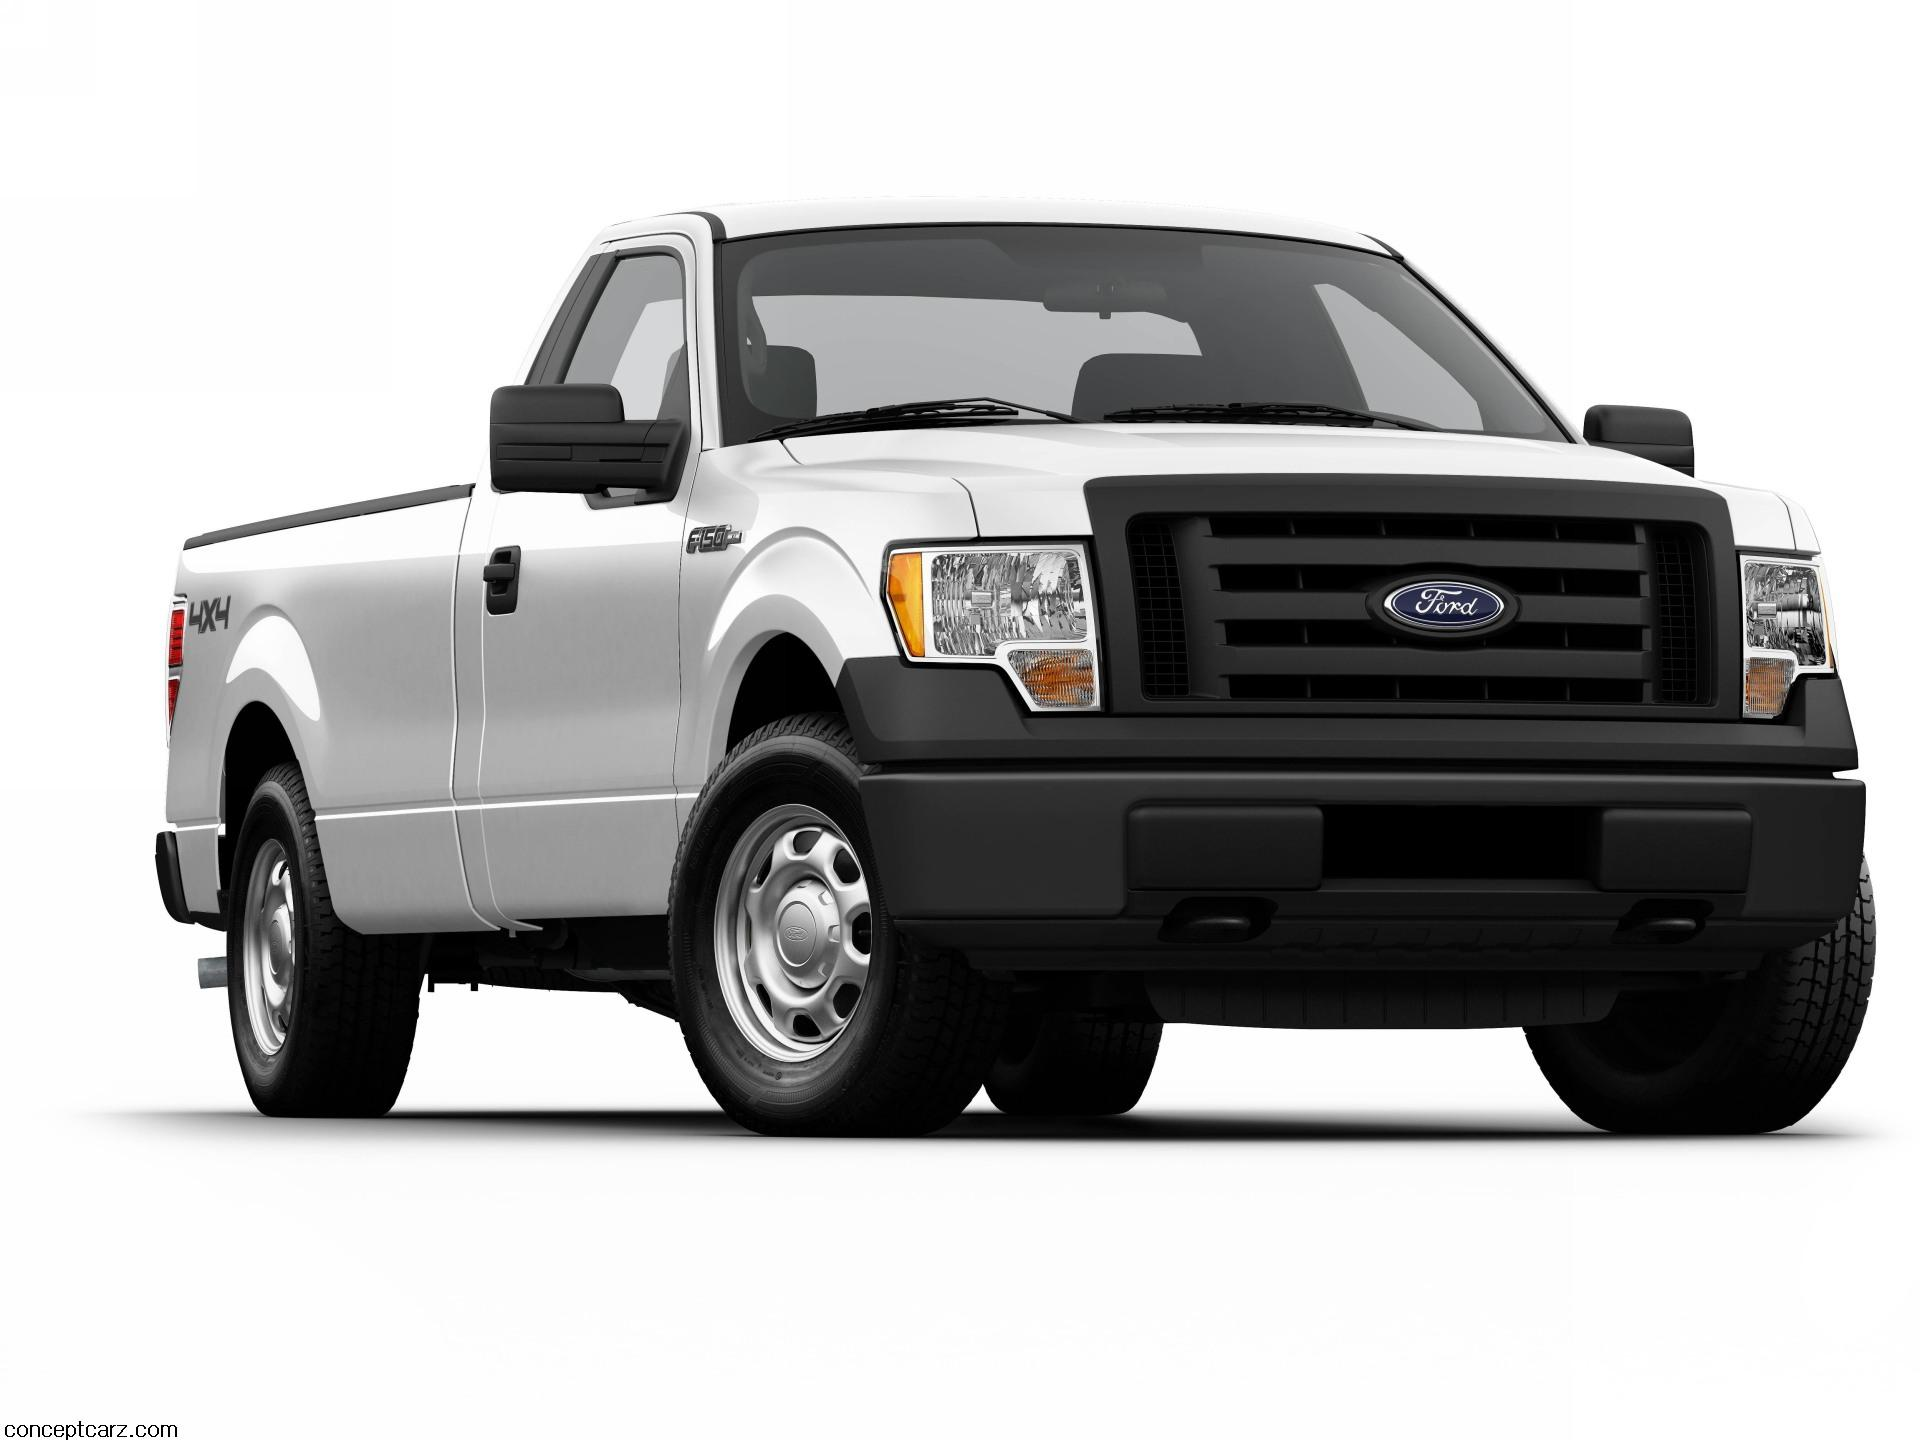 Ford F  News And Information Conceptcarz Com Rh Conceptcarz Com Ford Manual Transmission Diagram Ford Manual Transmission Diagram